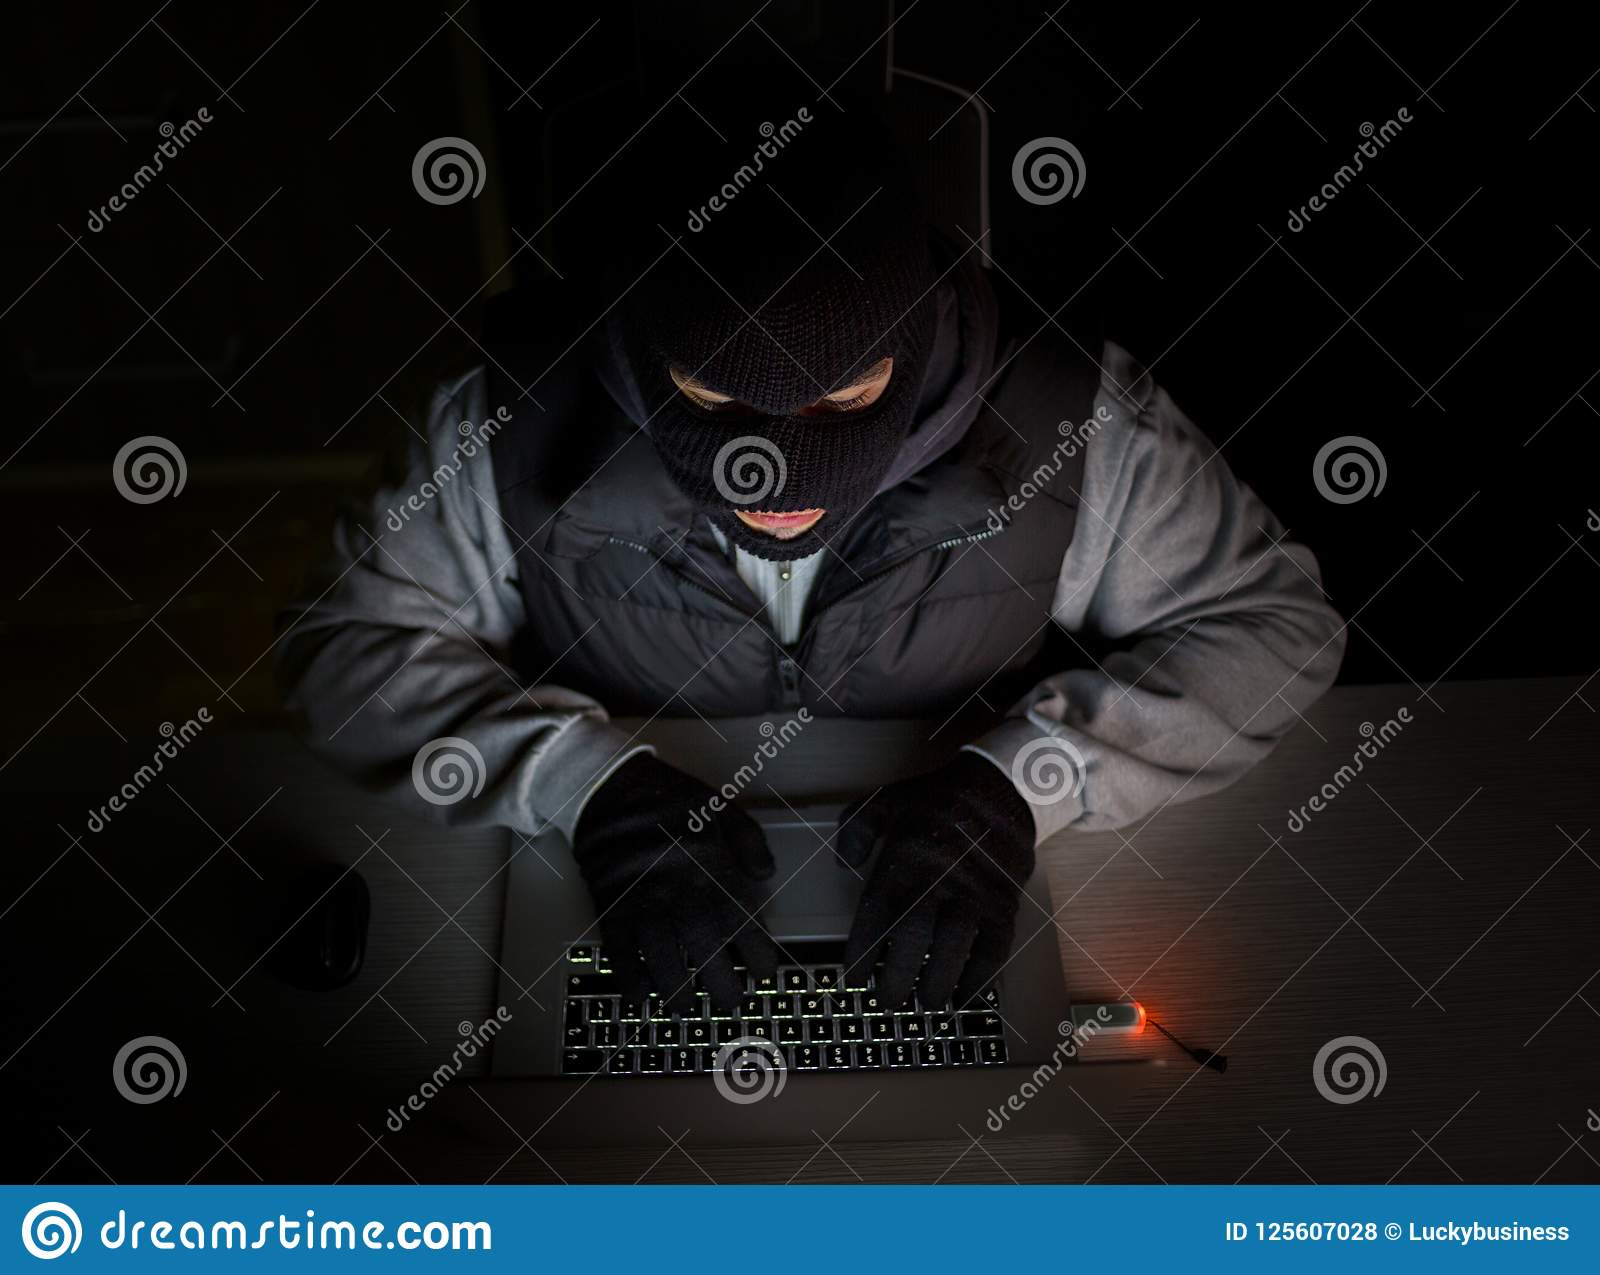 Hacker with balaclava typing on laptop